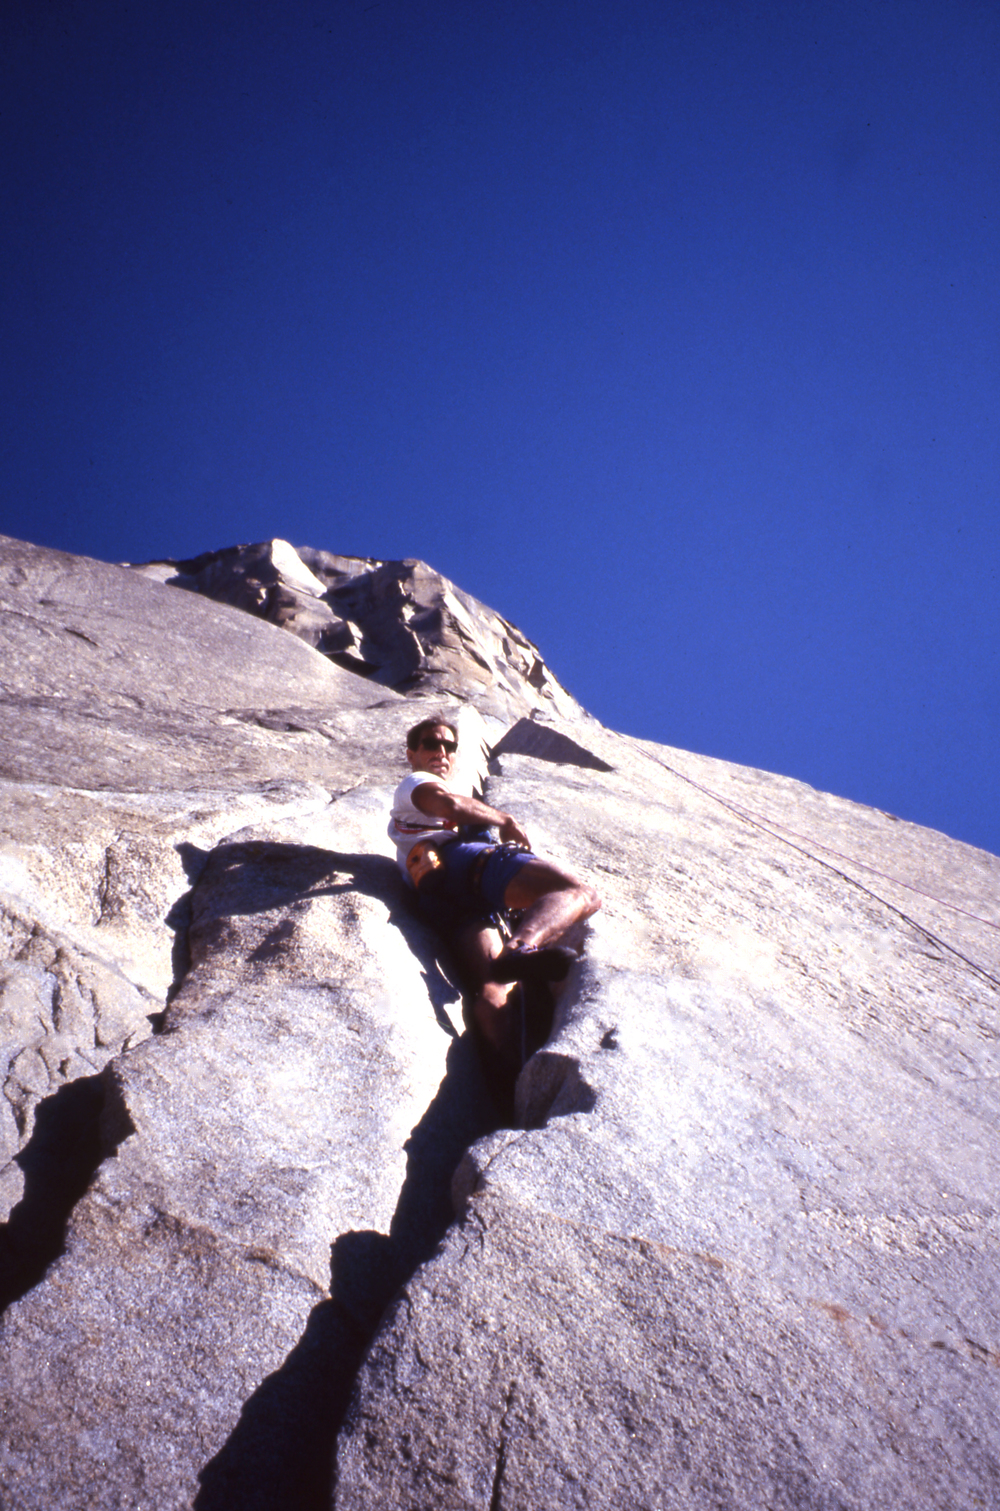 Under the California sun: Athol climbing the Stoveleg pitches of  The Nose ,  El Capitan, during a 15 hour ascent in 1994.